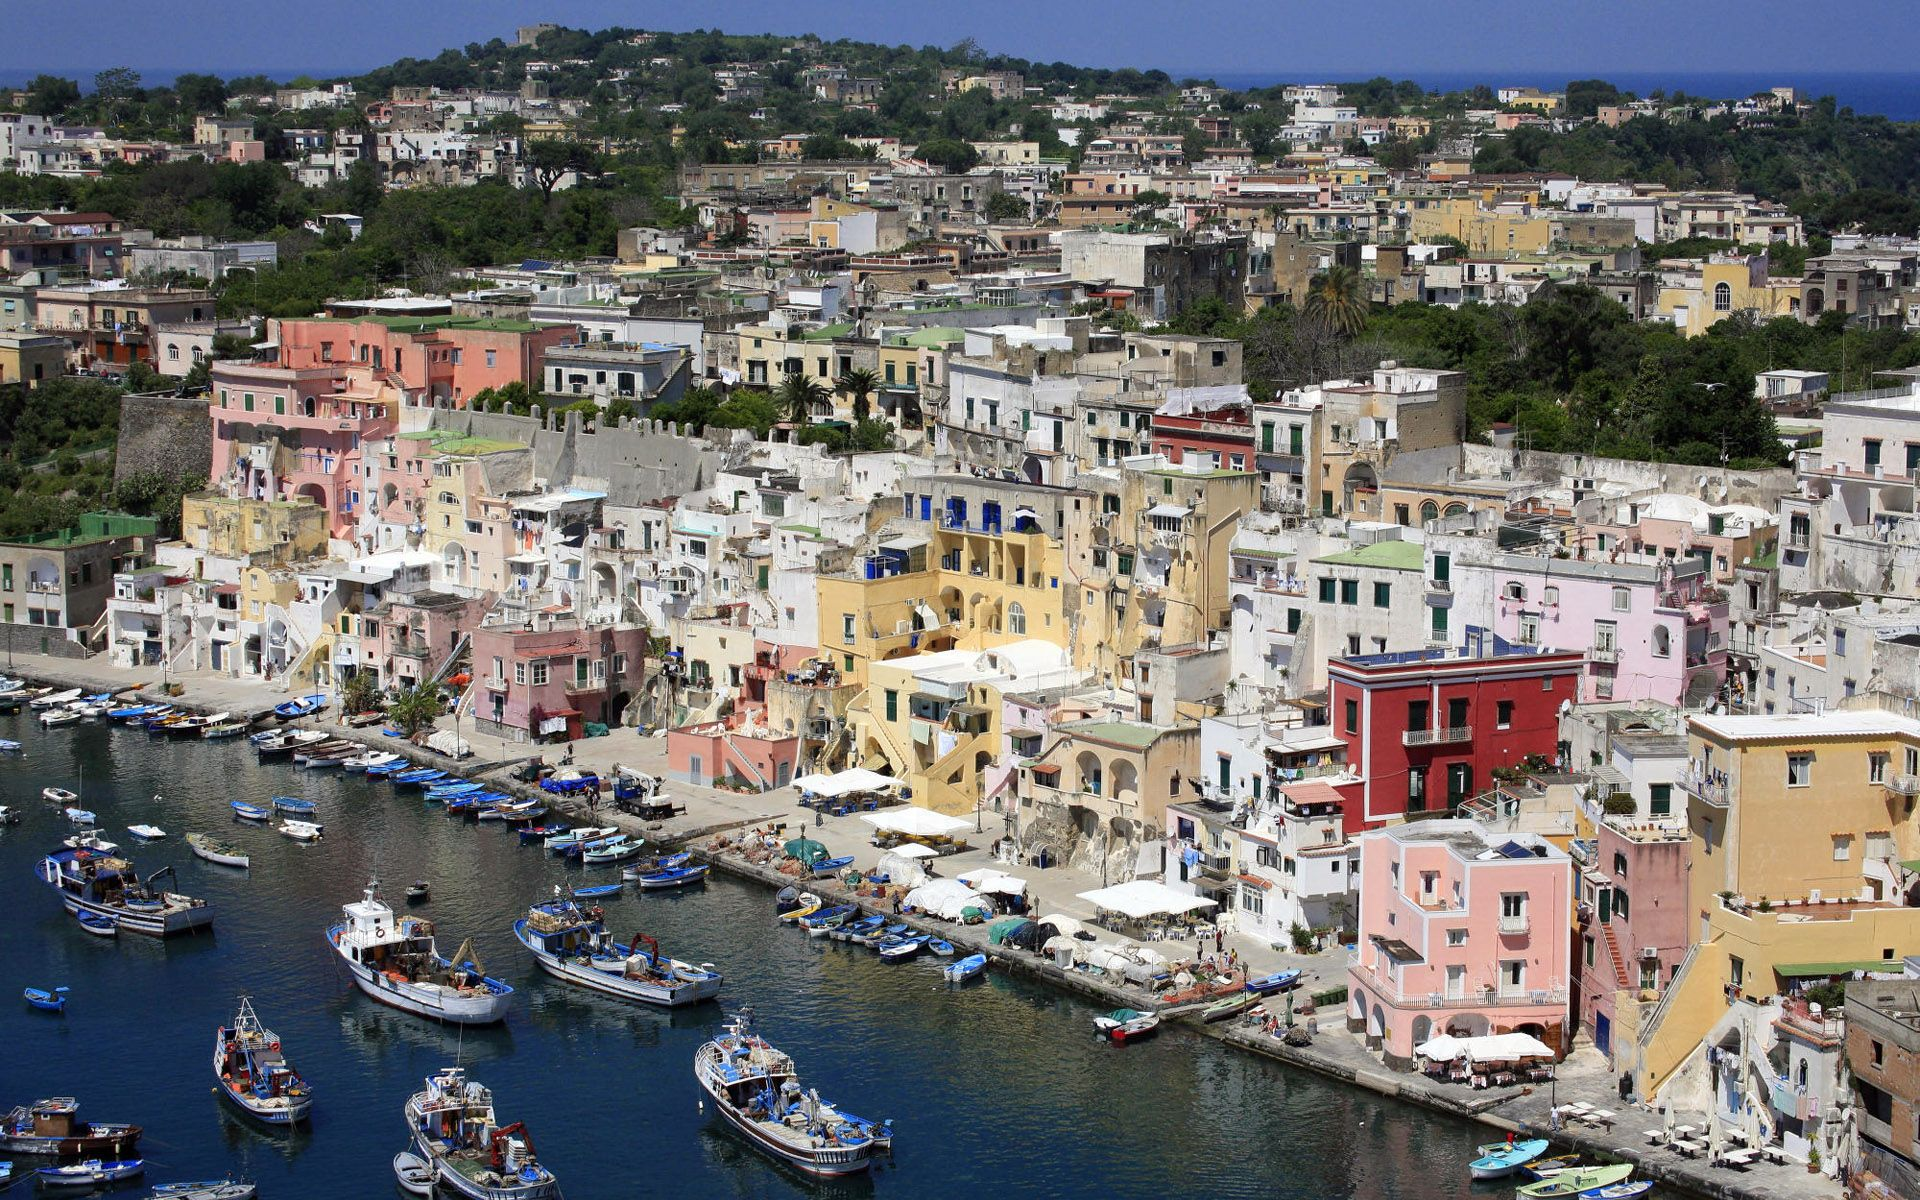 Procida Is One Of The Flegrean Islands Off Coast Naples In Southern Italy Island Between Cape Miseno And Ischia